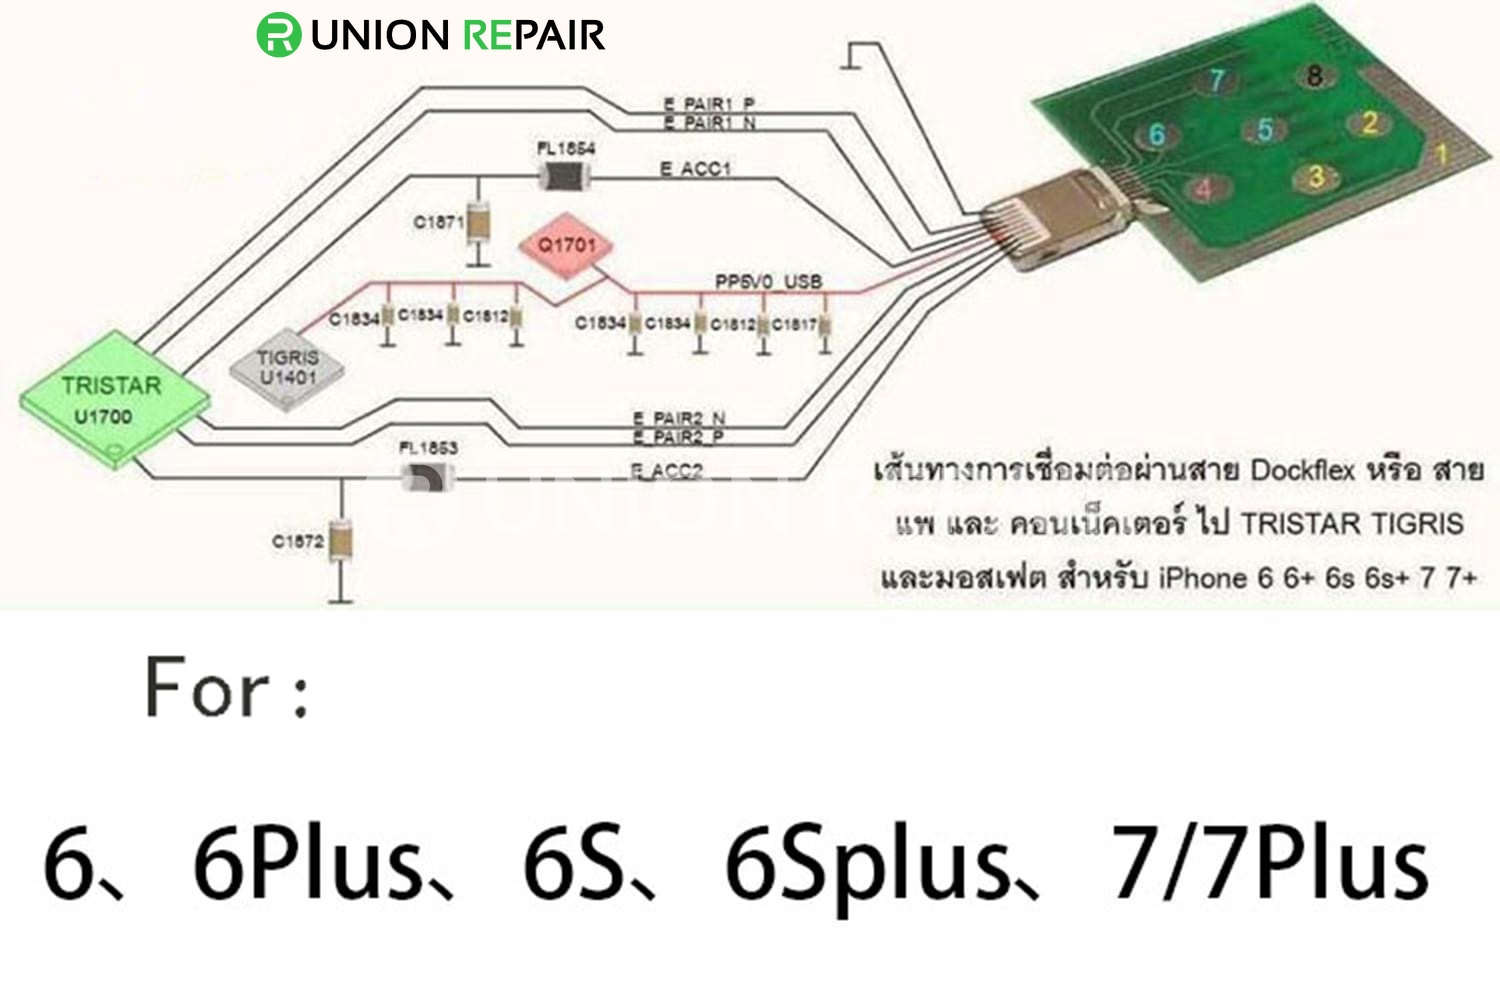 Usb Dock Pin Test Board For Iphone